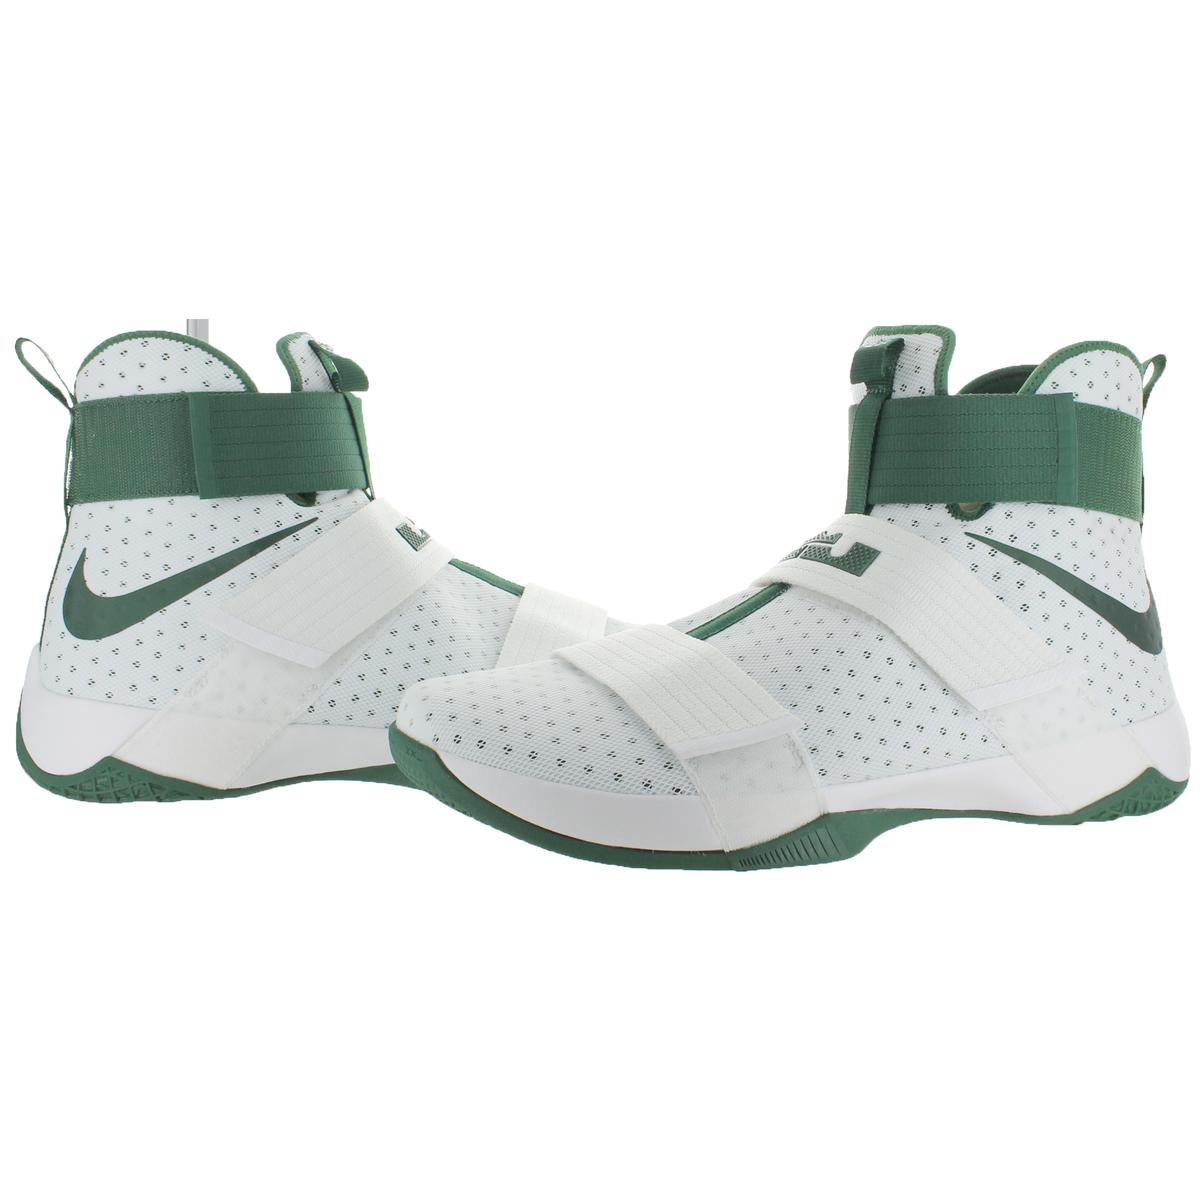 ca90f8e360fd new style lebron soldier 10 mens cheap parts 79dbd 3bfd3